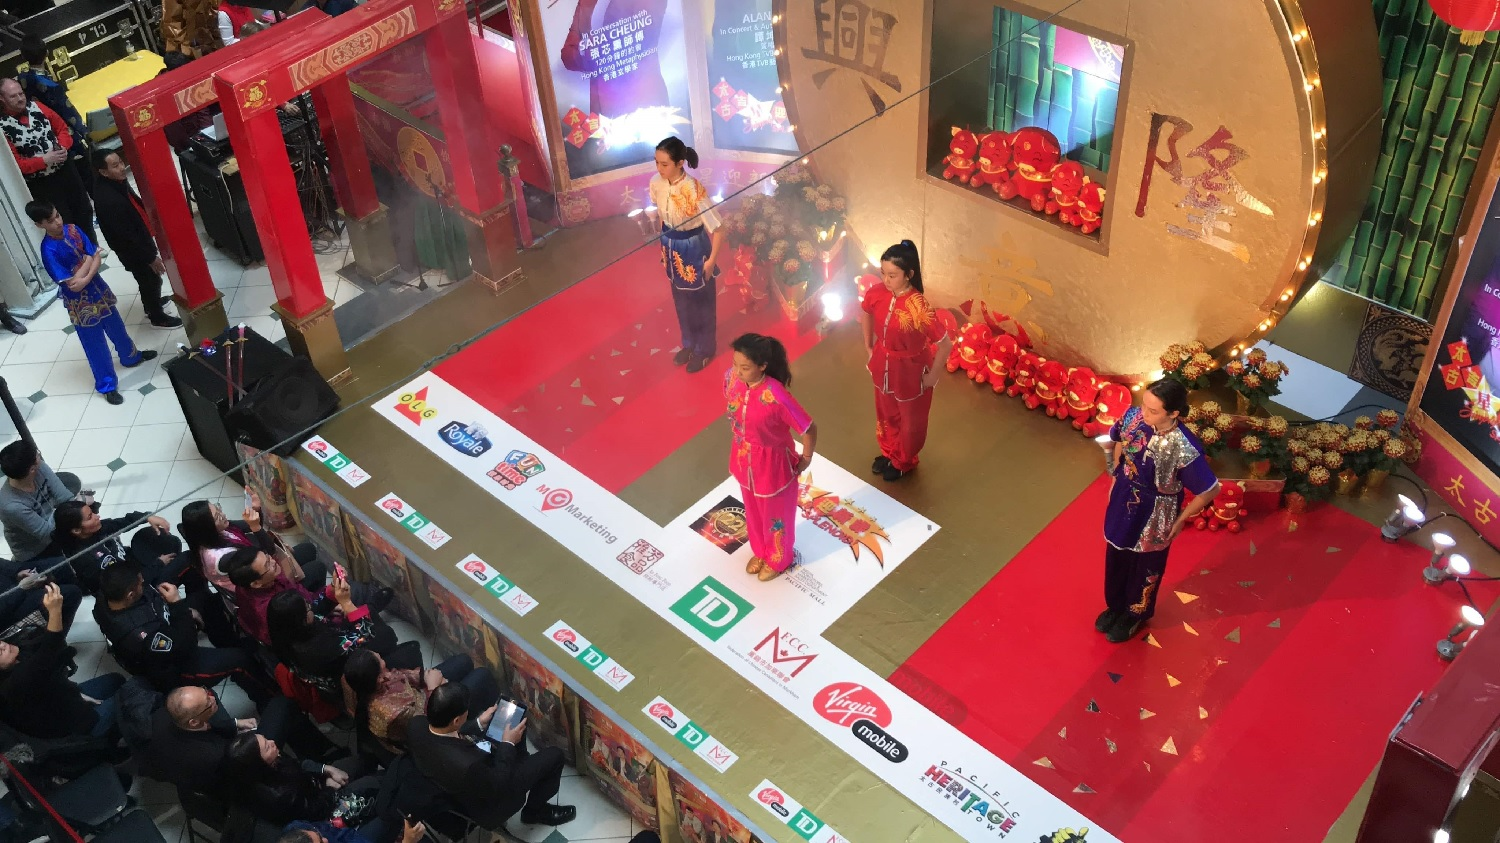 wayland-li-wushu-pacific-mall-chinese-new-year-2019-10.jpg